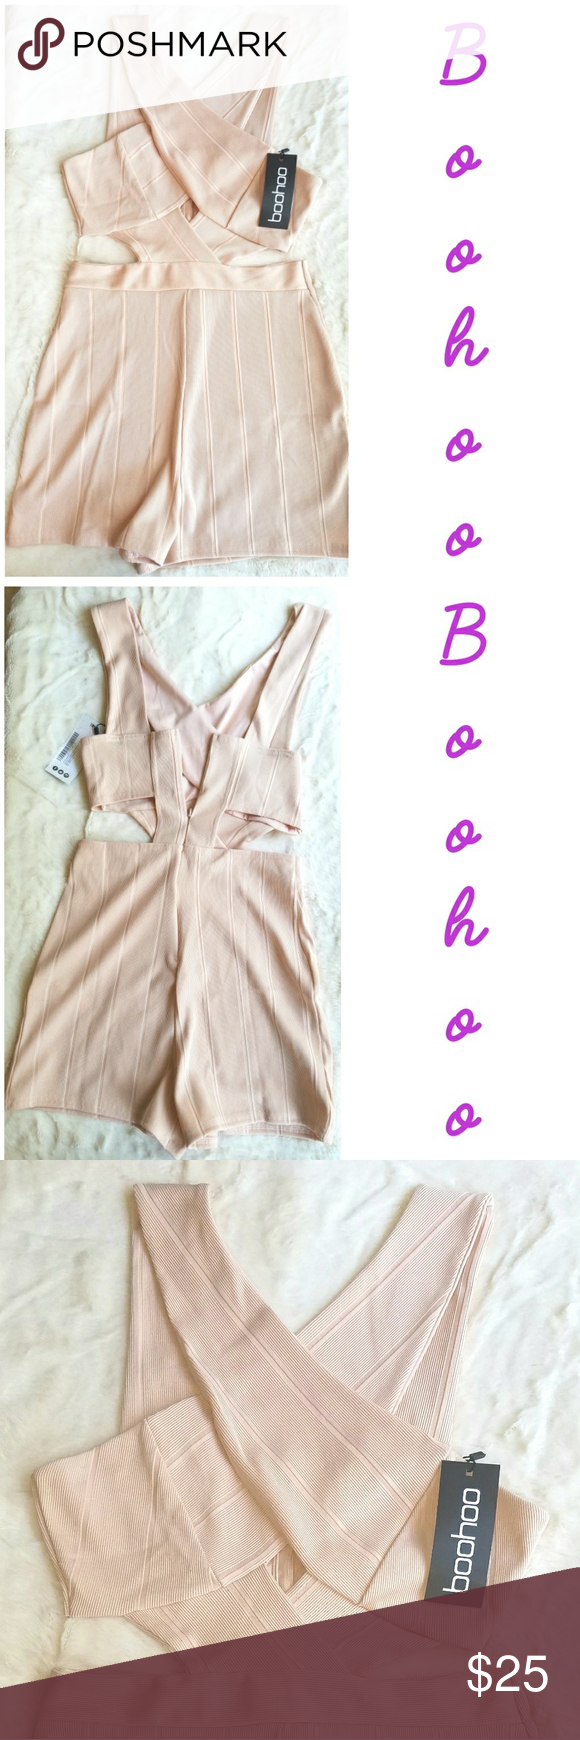 b13adb188a Boohoo Bandage Playsuit Boohoo Jenny cross front cut out side bandage  playsuit. In blush. Size 8 Boohoo Pants Jumpsuits   Rompers